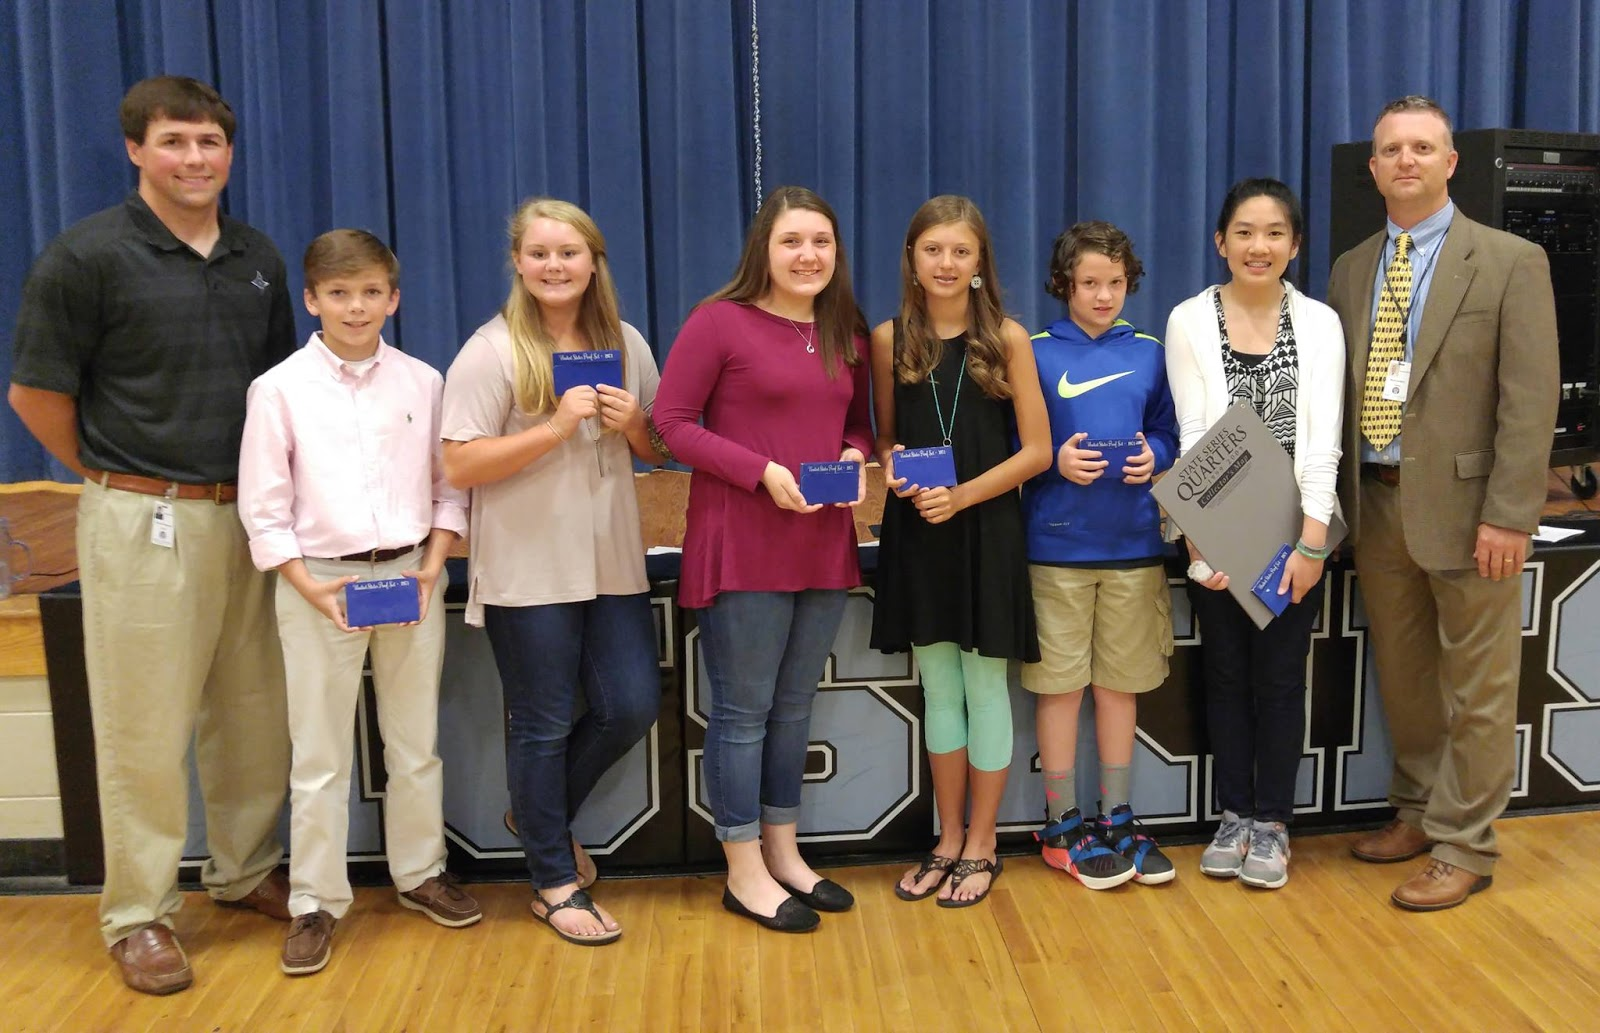 elks americanism essay 2013 Americanism essay contest each year the elks lodge of san mateo sponsors an essay contest with a theme relating to americanism students in fifth through eighth.